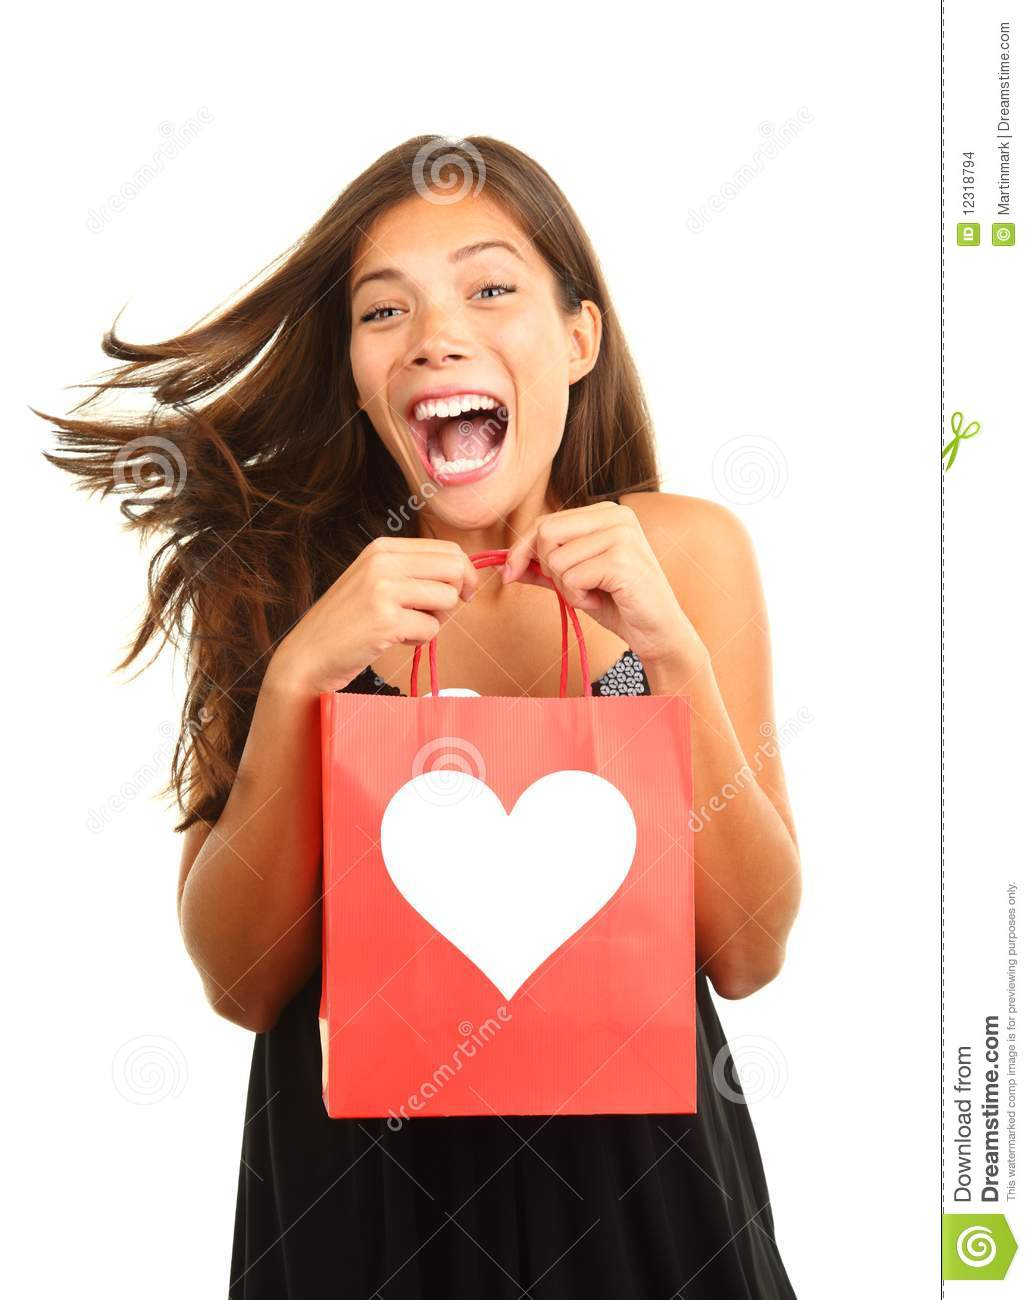 Download Valentines day gift stock photo. Image of flirt, cute - 12318794